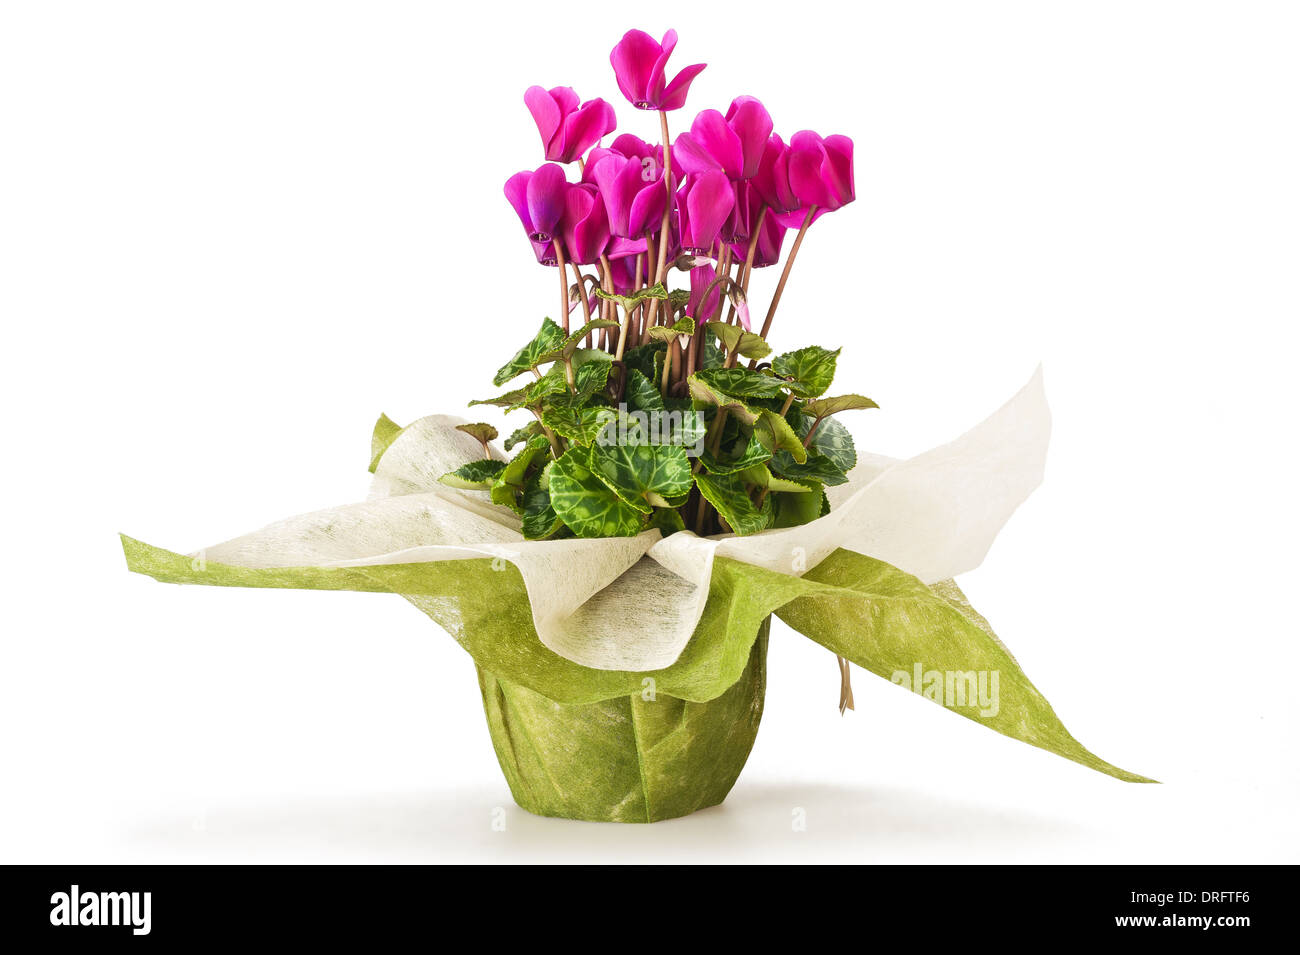 cyclamen flowers in pot isolated on white - Stock Image